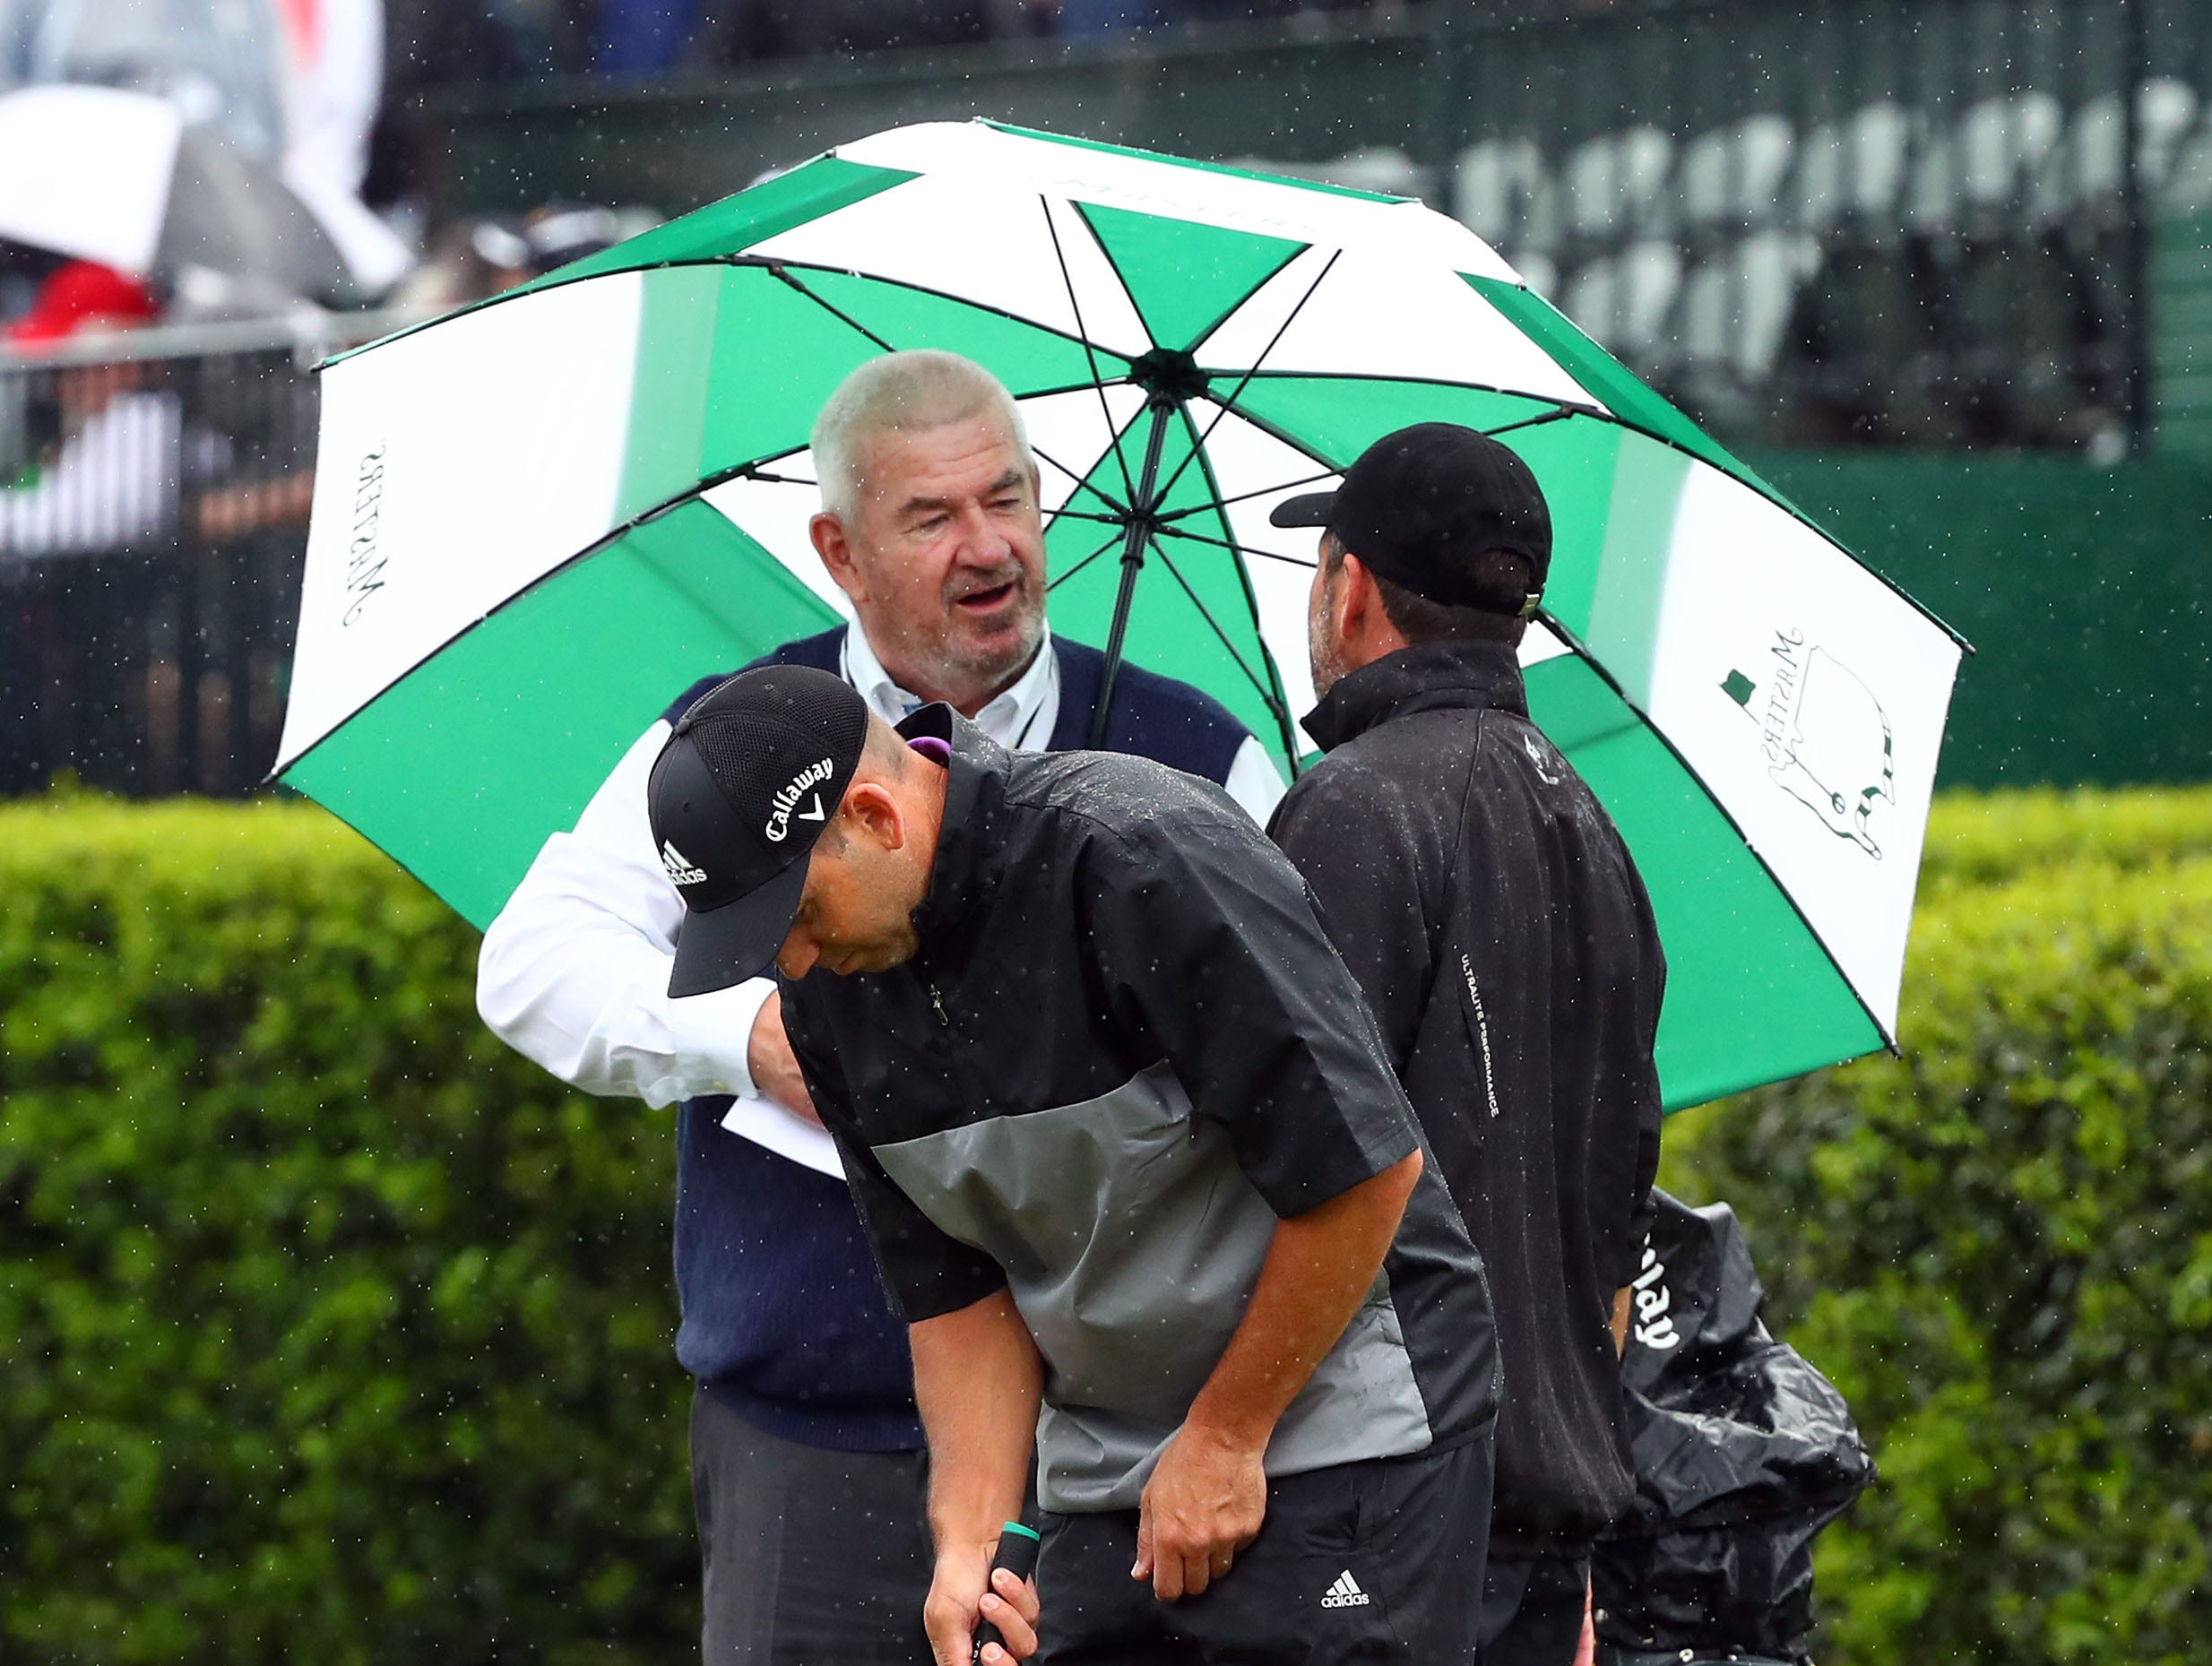 Apr 9, 2019; Augusta, GA, USA; Jose Maria Olazabal of Spain talks with John Paramor, the European Tour's chief rules official, as Sergio Garcia of Spain (front) putts at the practice facility during a practice round for The Masters golf tournament at Augusta National Golf Club. Mandatory Credit: Rob Schumacher-USA TODAY Sports